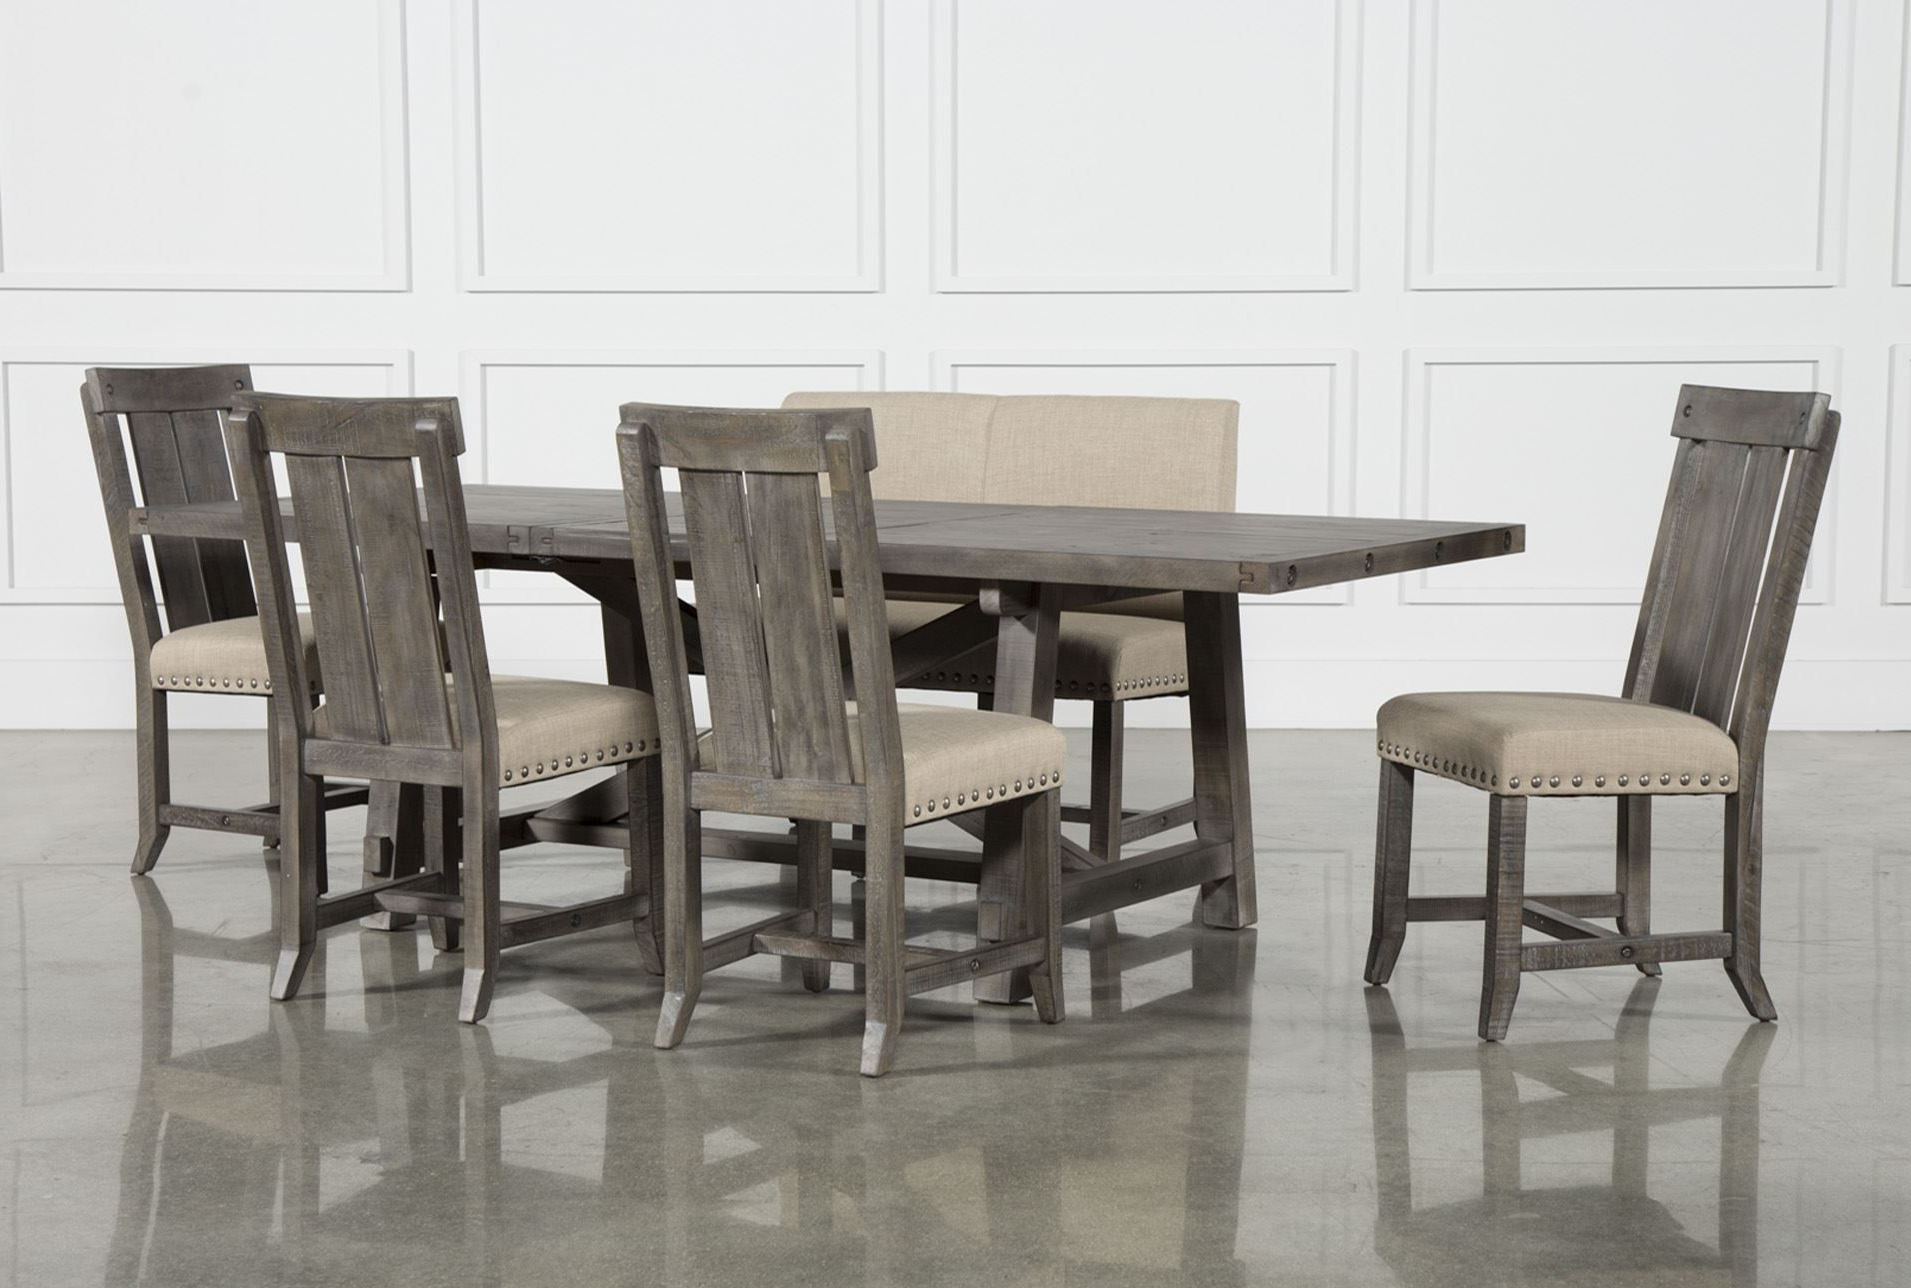 Most Recent Norwood 7 Piece Rectangle Extension Dining Sets Inside Jaxon Grey 6 Piece Rectangle Extension Dining Set W/bench & Wood (View 11 of 25)